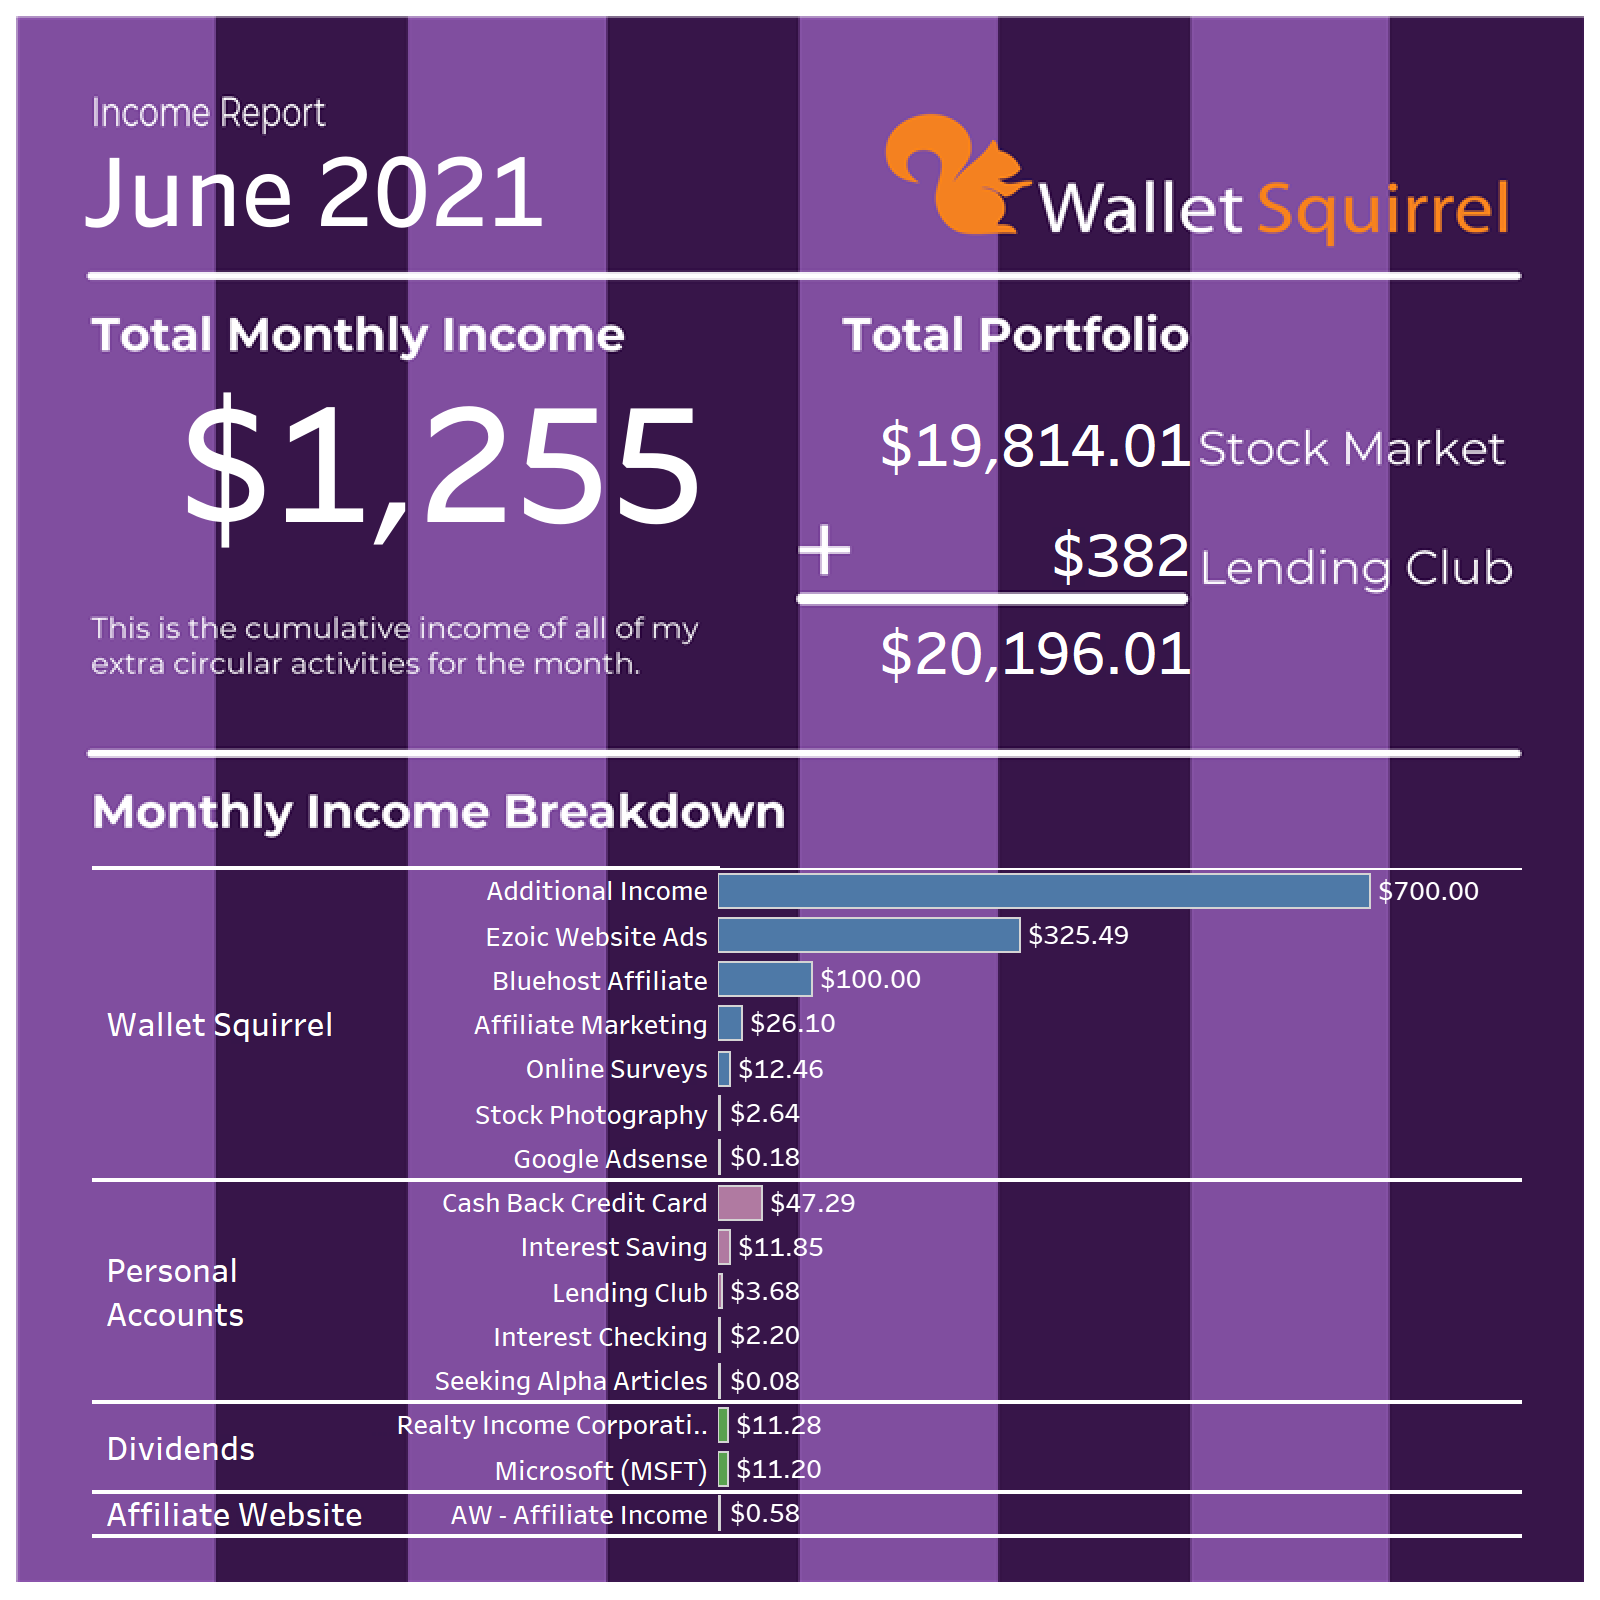 June-2021-Wallet-Squirel-Income-Report-Infographic